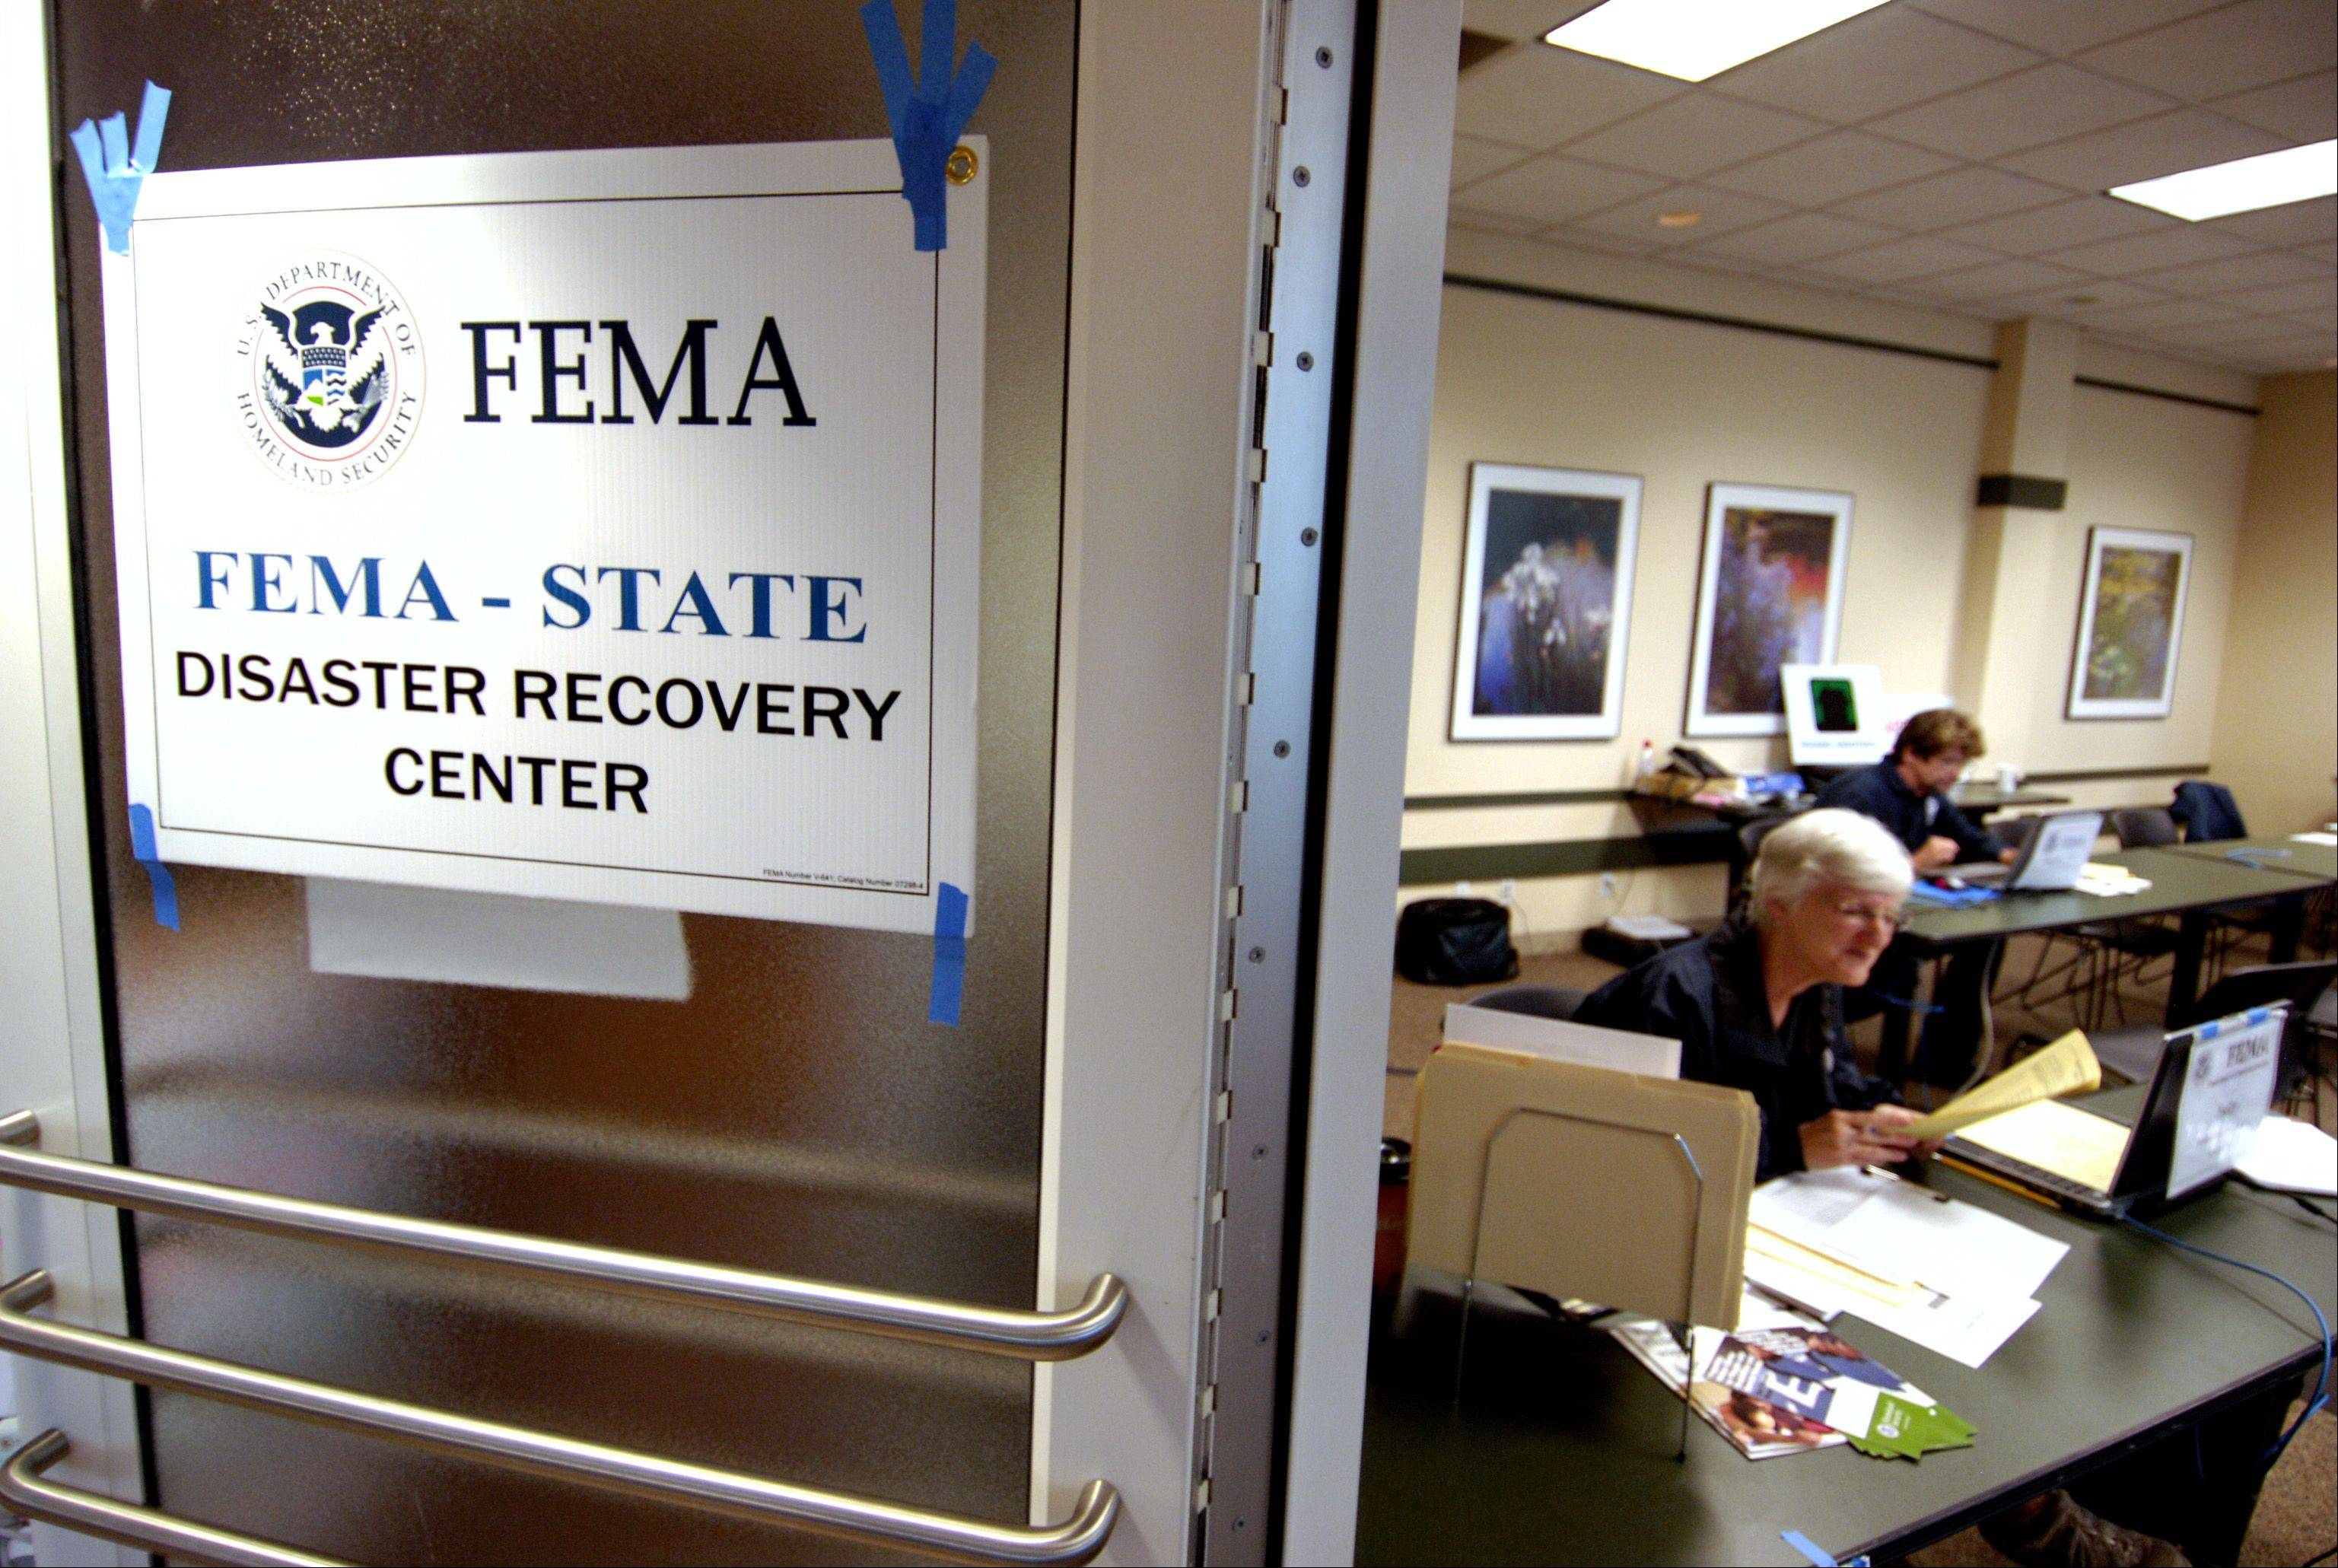 FEMA's Disaster Recovery Center, located in the Lisle Police Department, will be open until further notice.